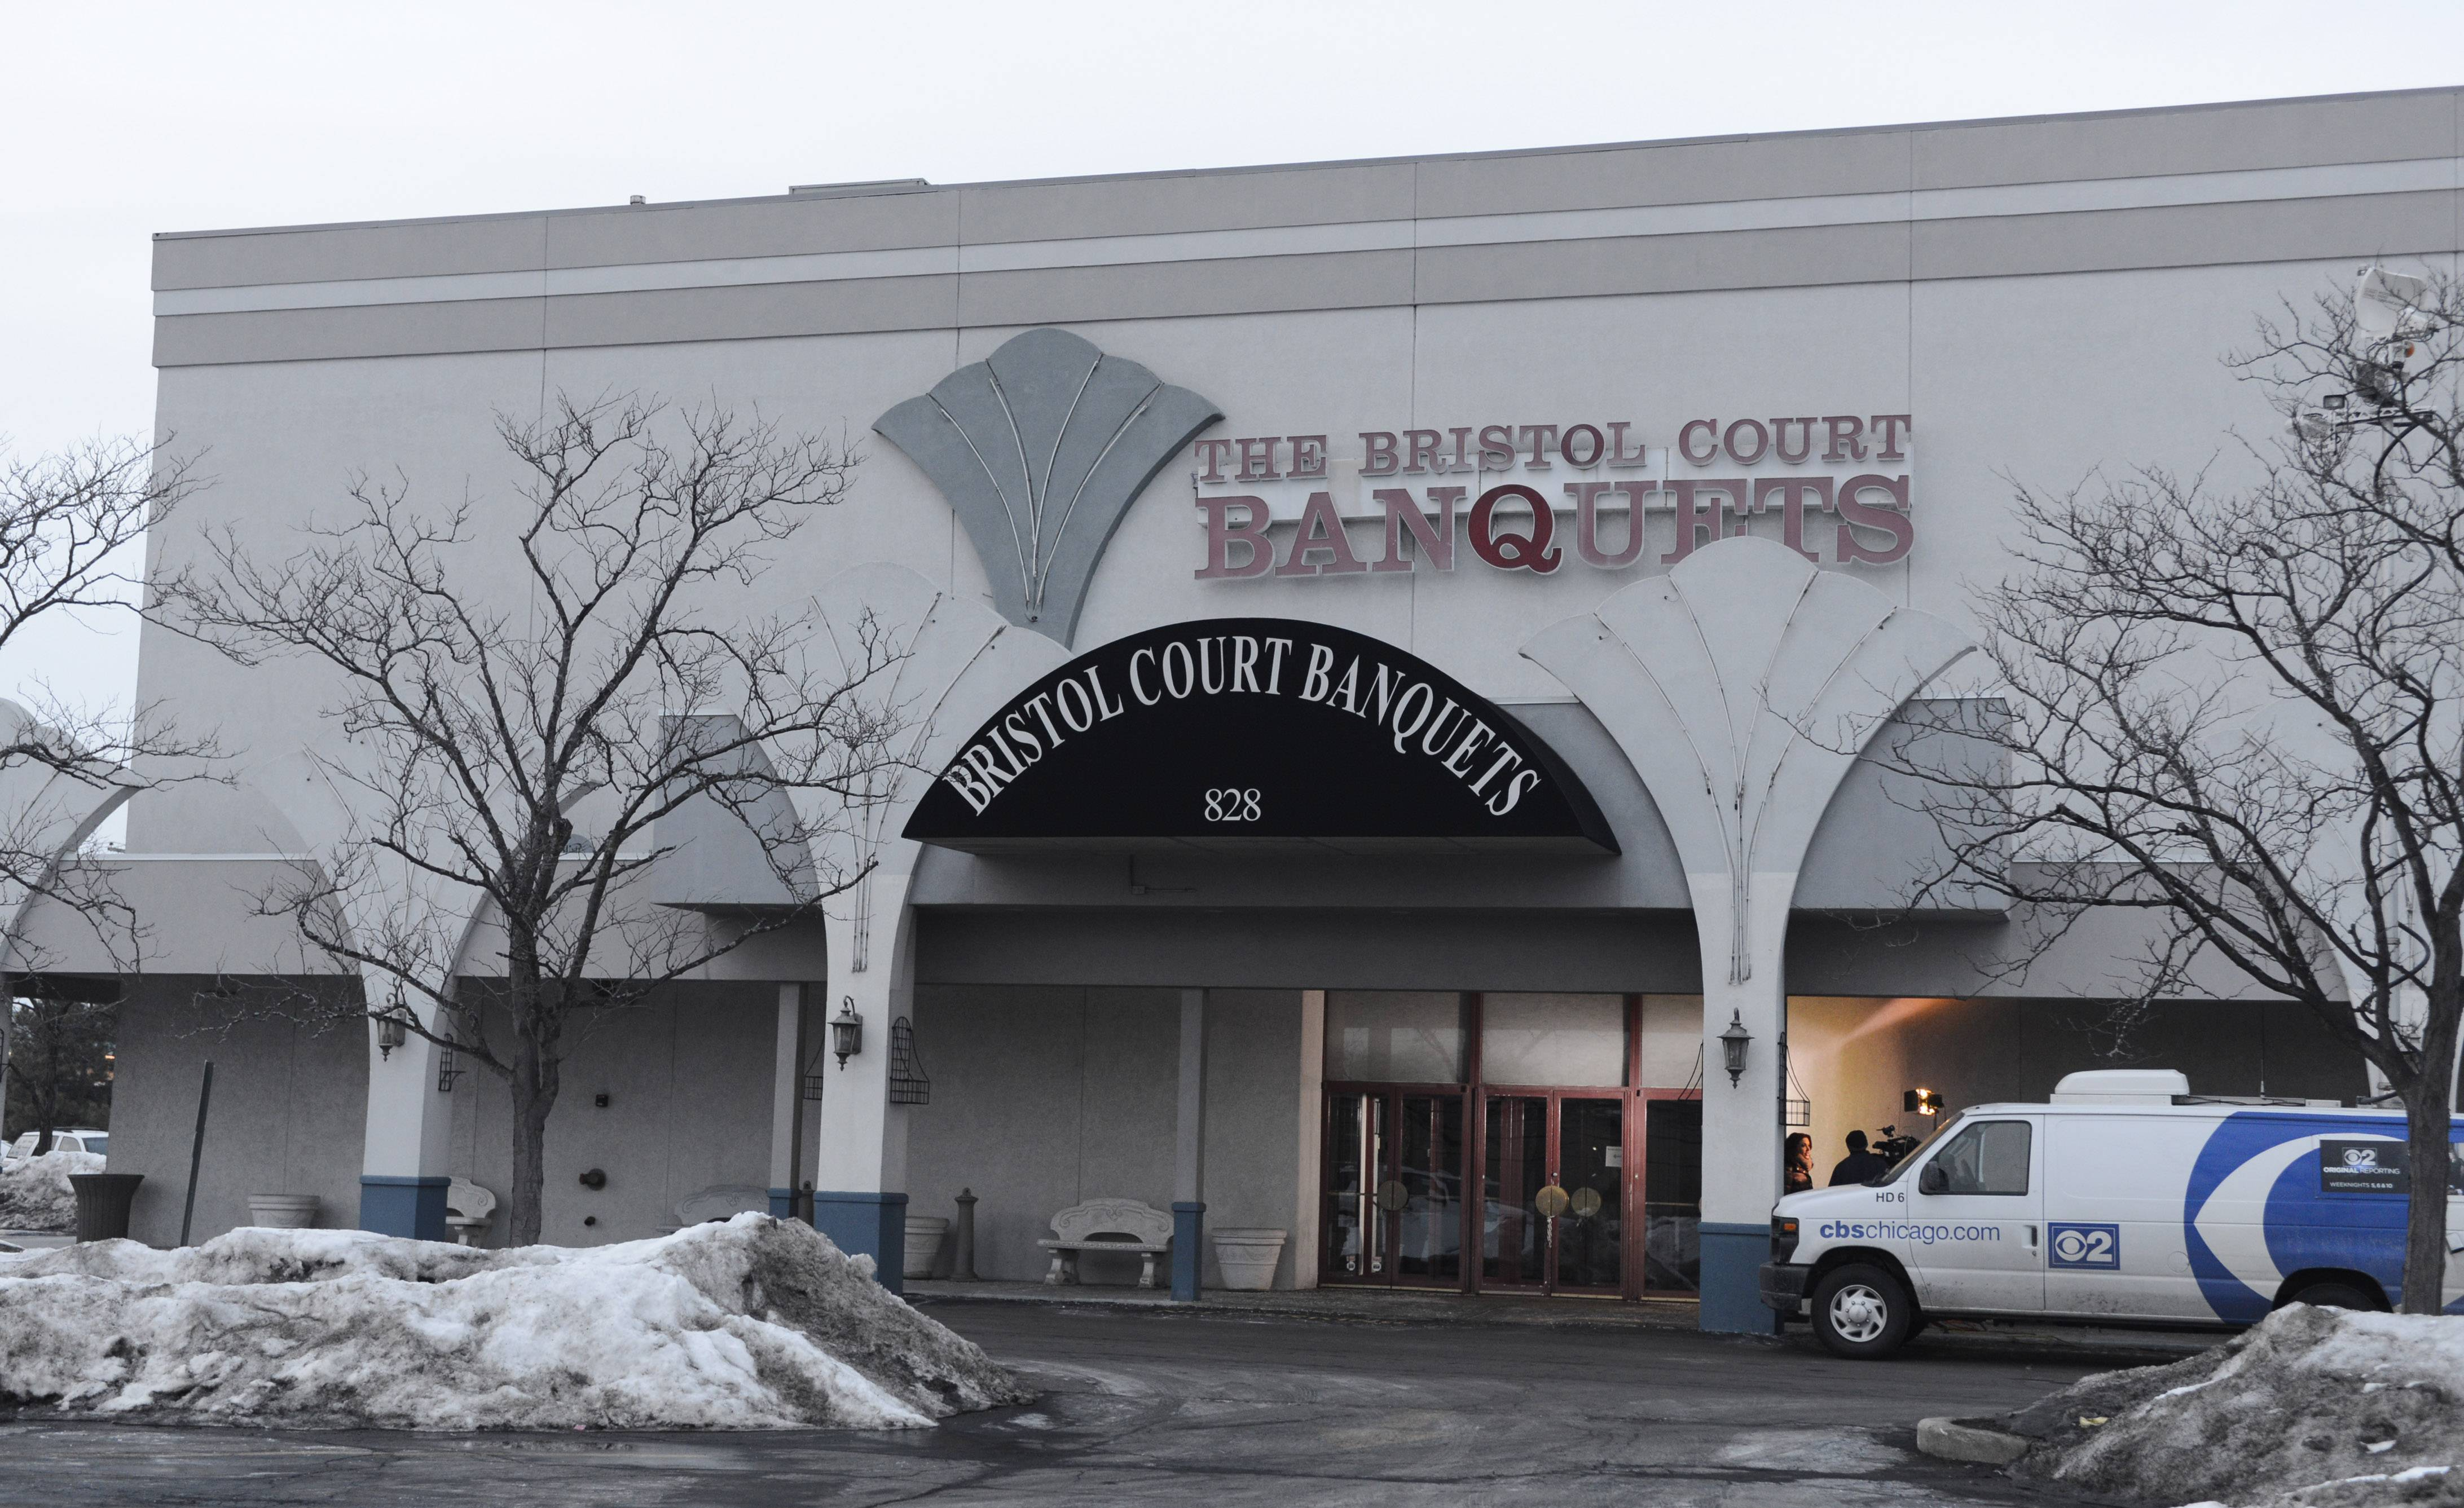 Bristol Court Banquets in Mount Prospect unexpectedly shut its doors last week.